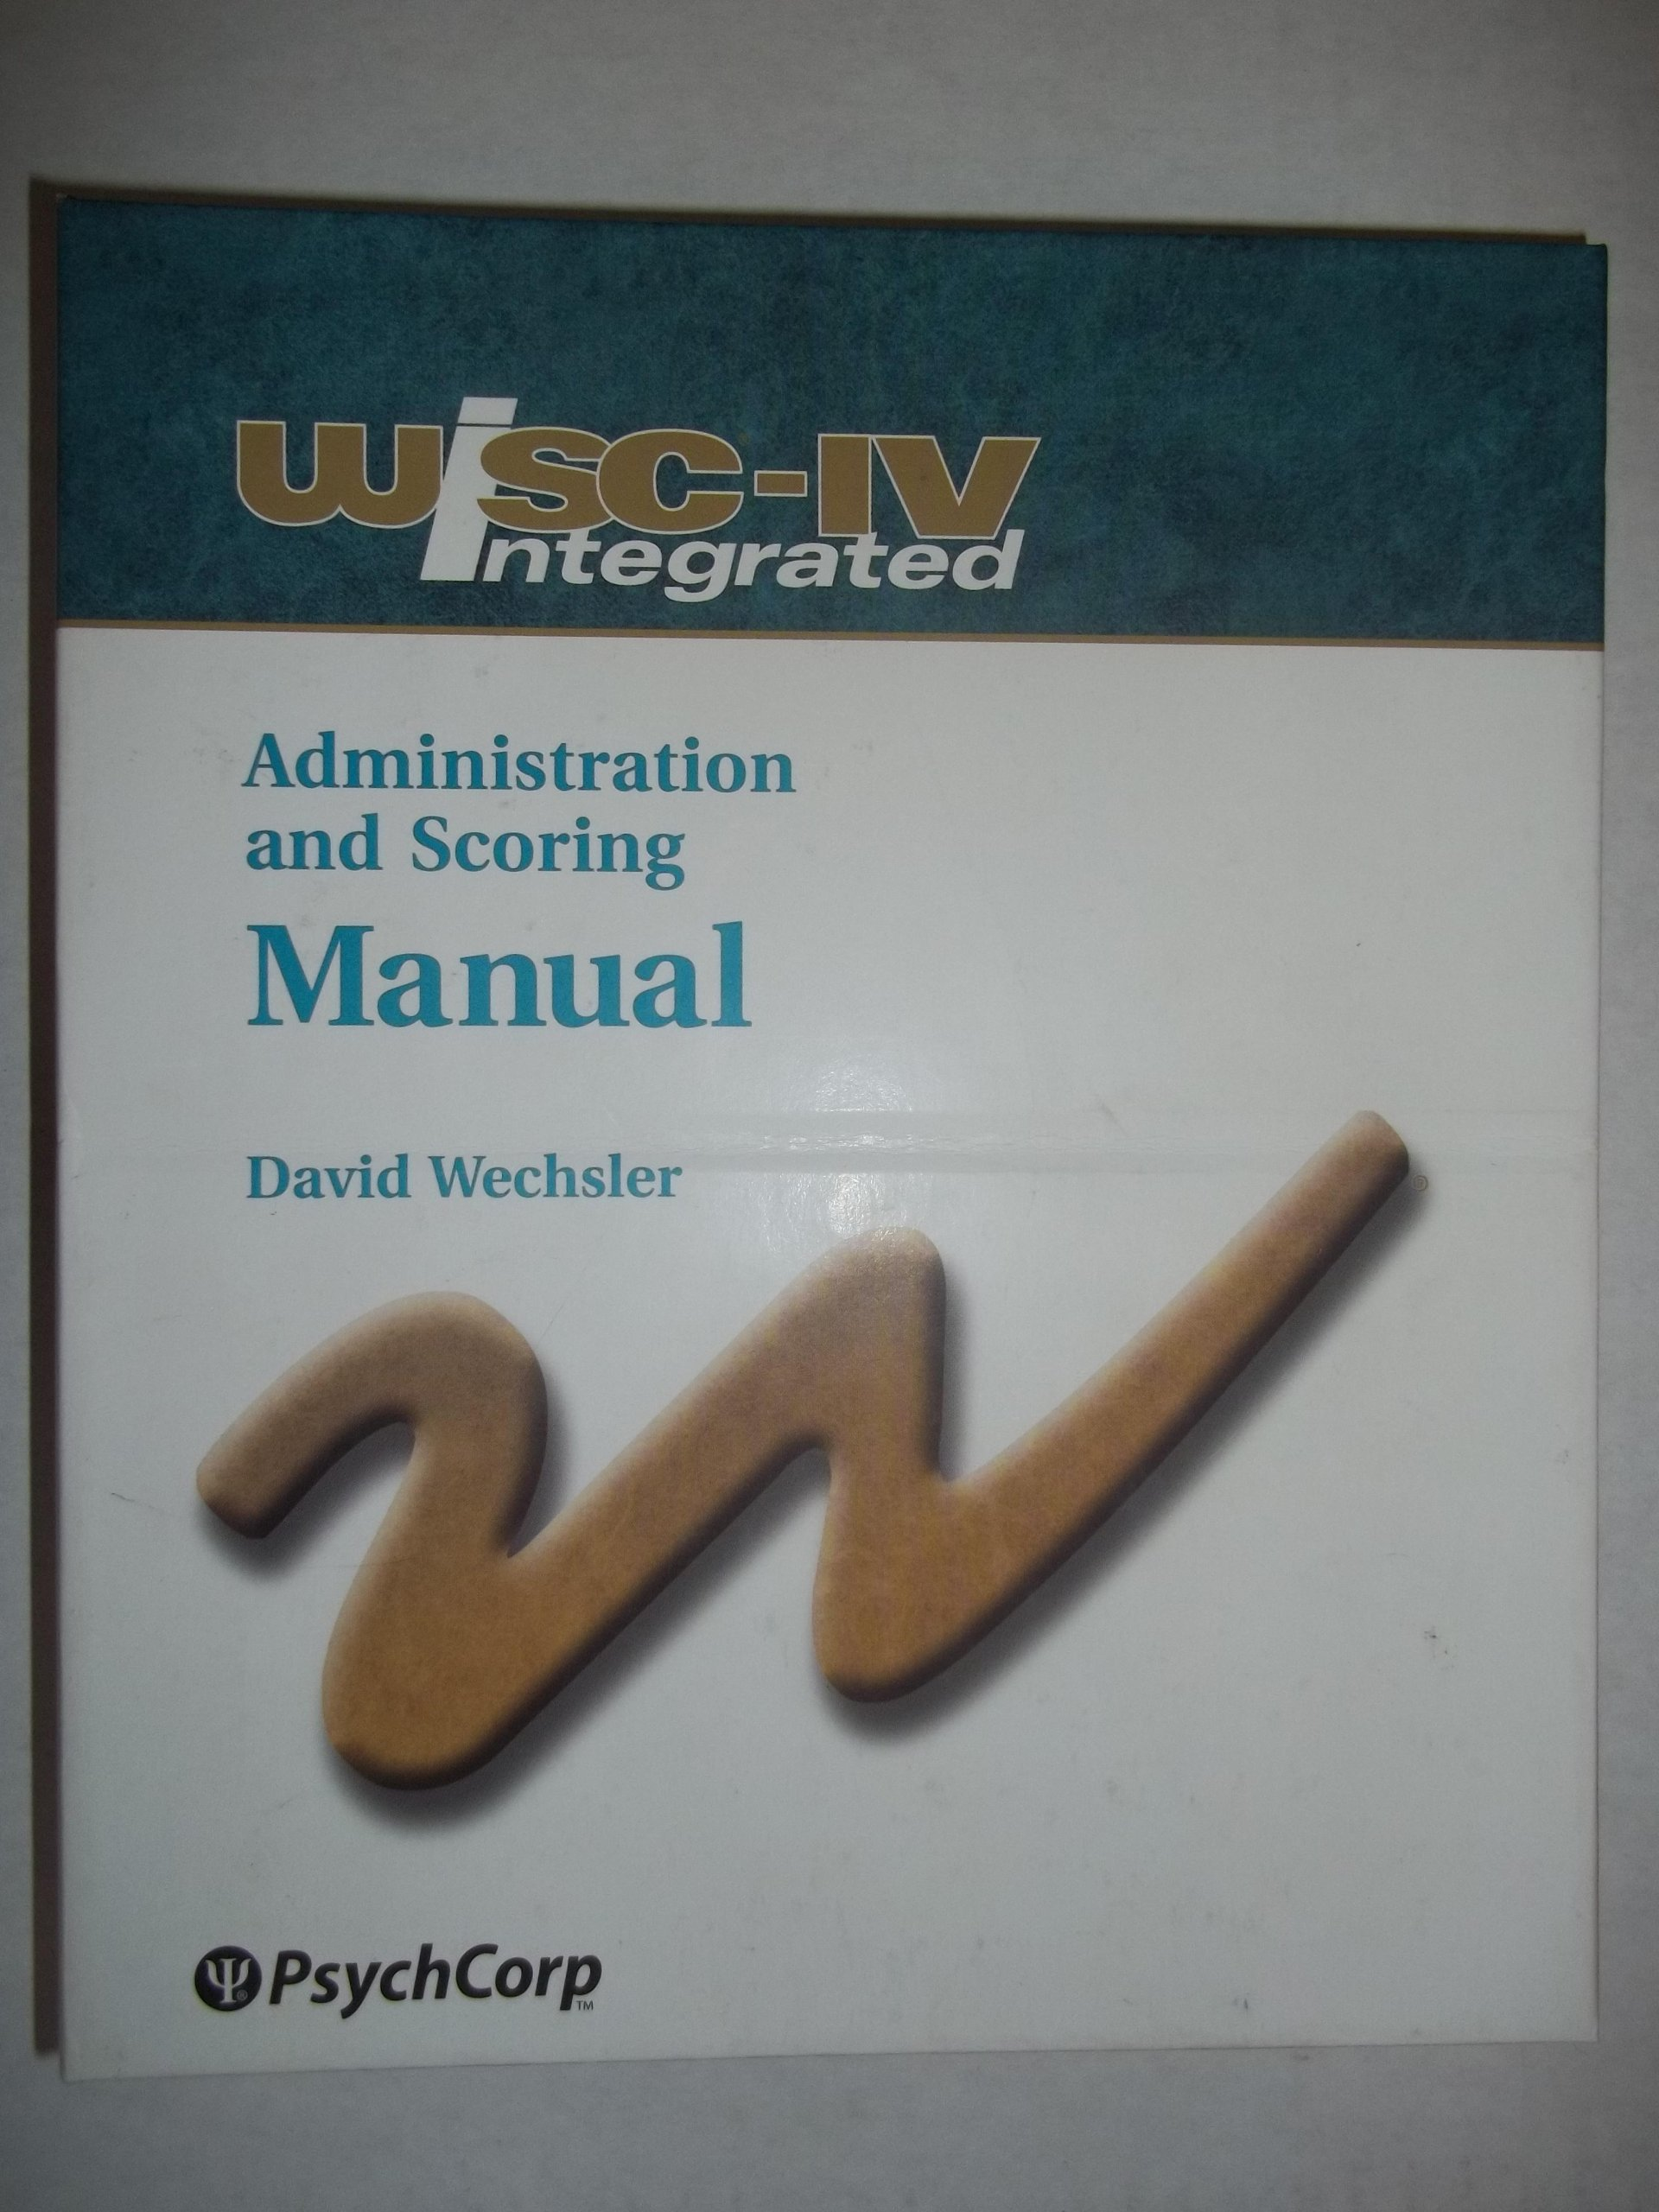 WISC IV Integrated Administration and Scoring Manual (Wechsler Intelligence  Scale for Children Fourth Edition - Integrated): David Wechsler:  9780158982830: ...